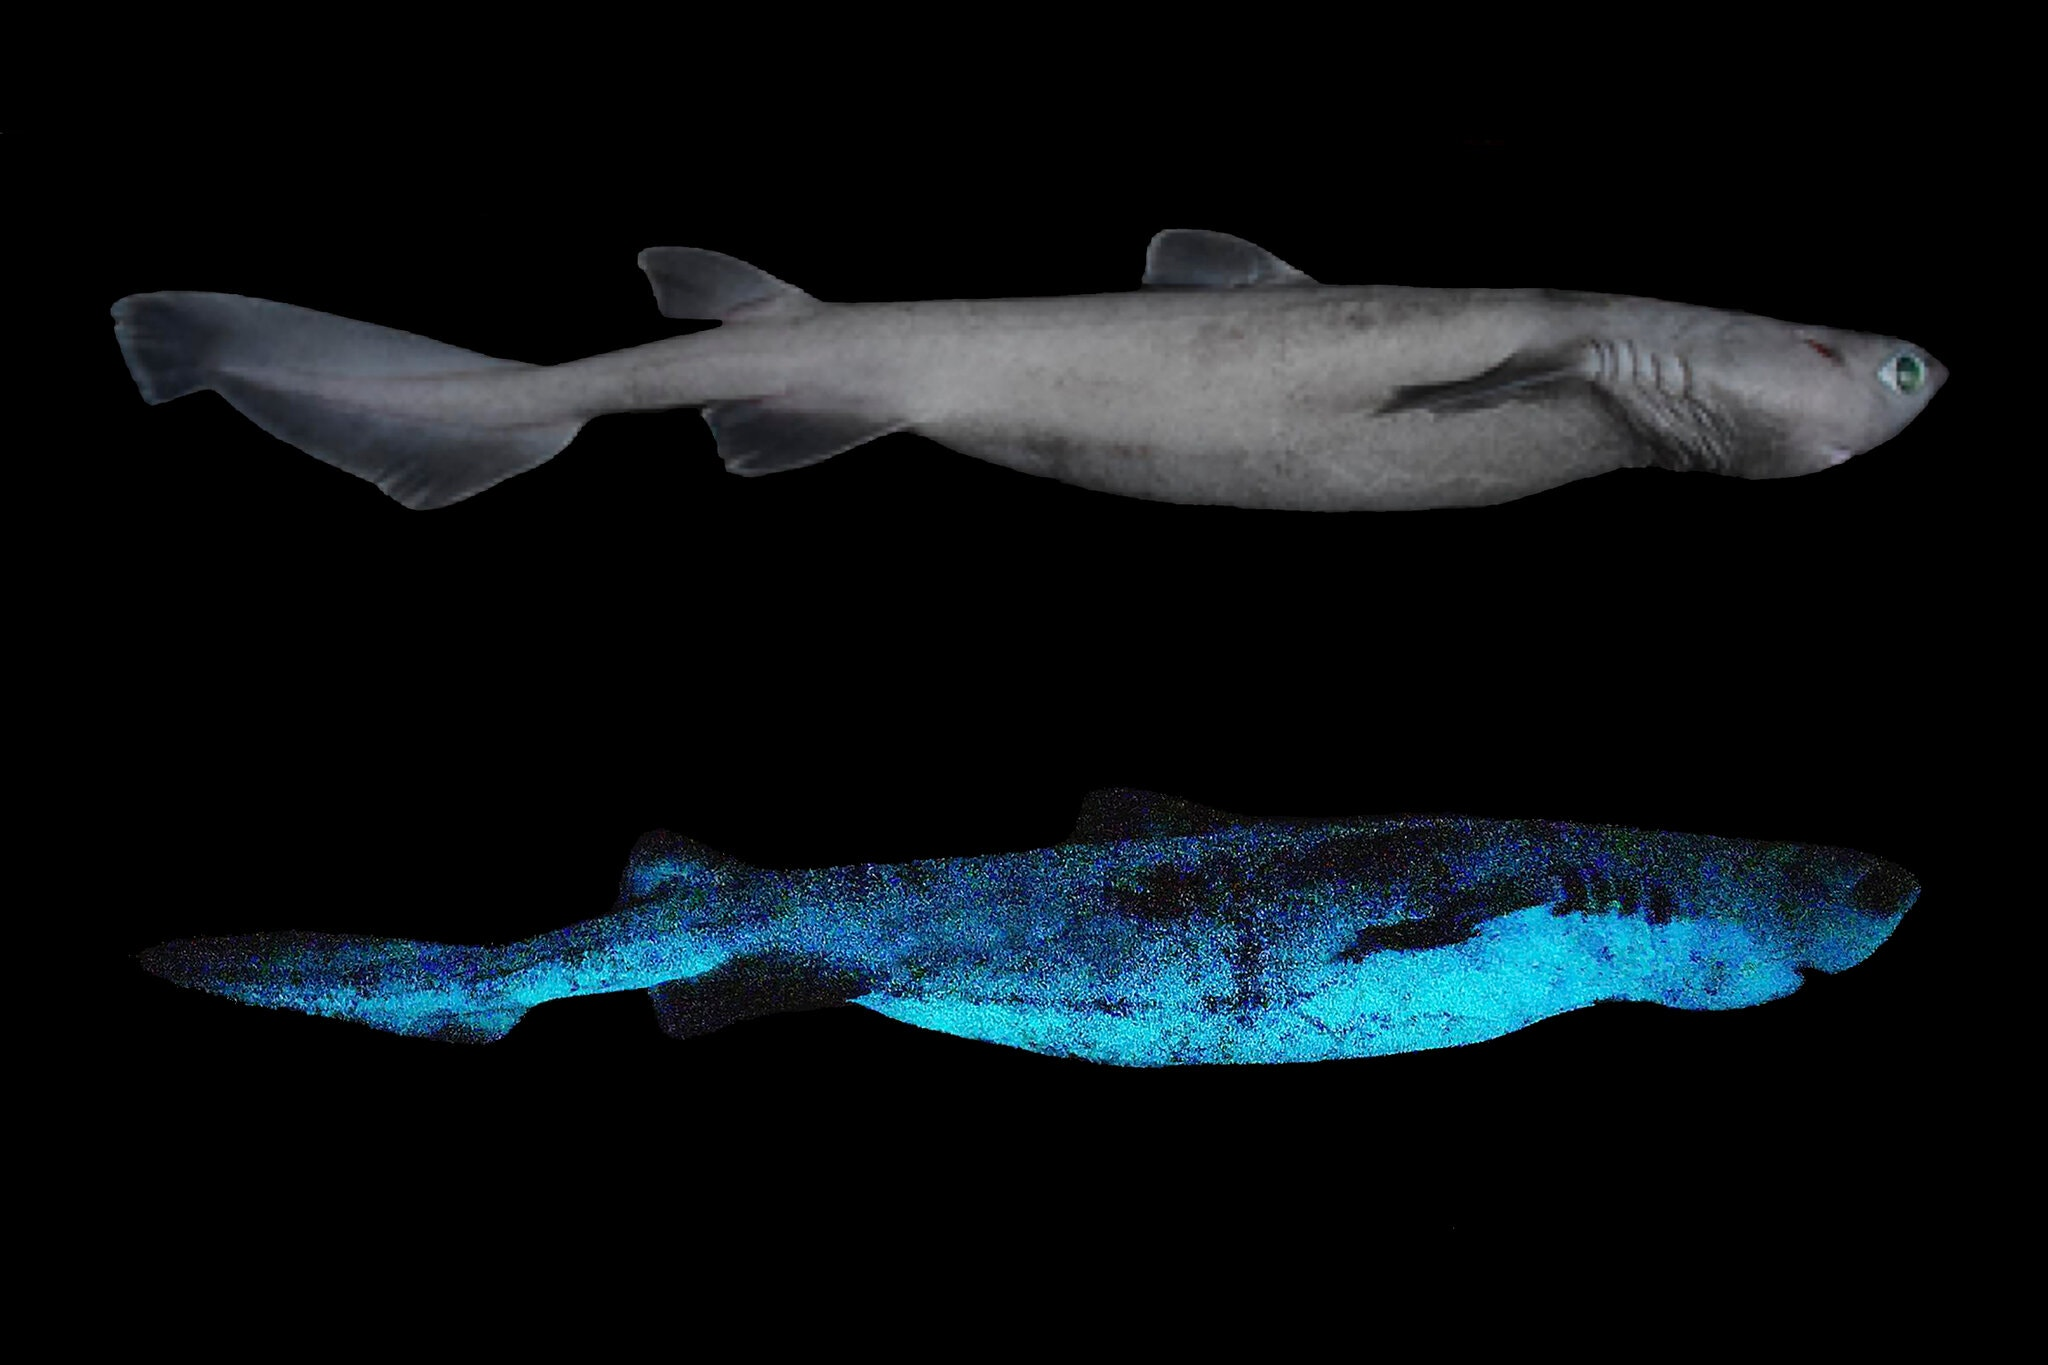 The Kitefin Shark Is The World's Largest-Known Luminous Vertebrate